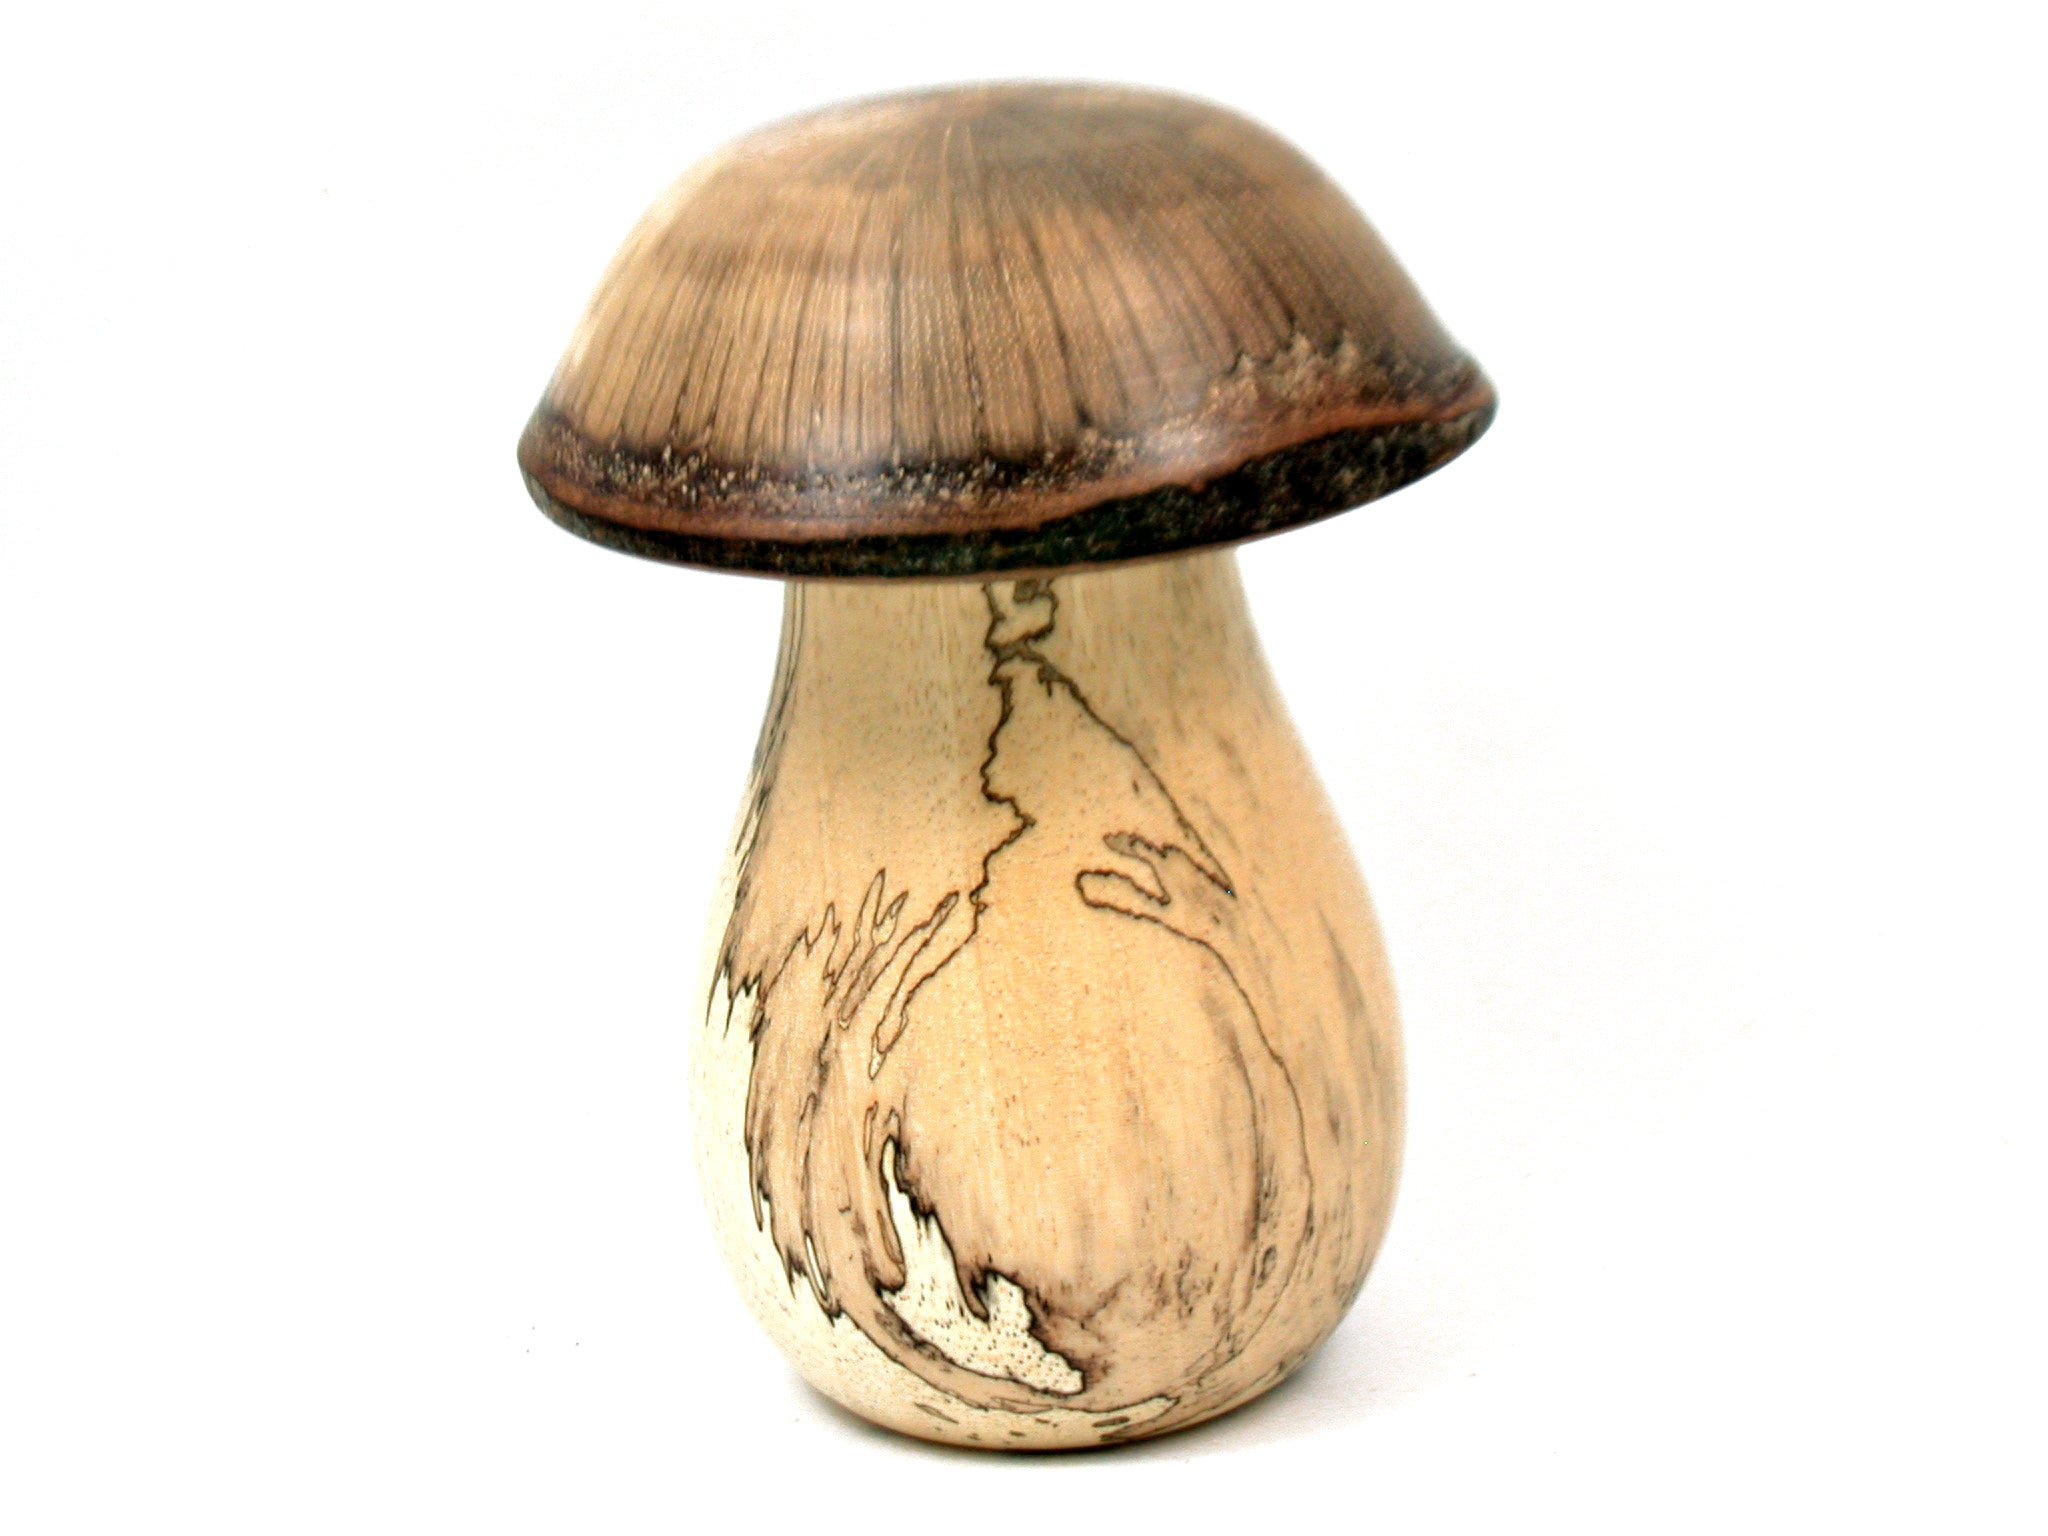 LV-4110  Spalted Tamarind & Live Oak Wooden Mushroom Secret Compartment, Gift Box, Jewelry Box-THREADED